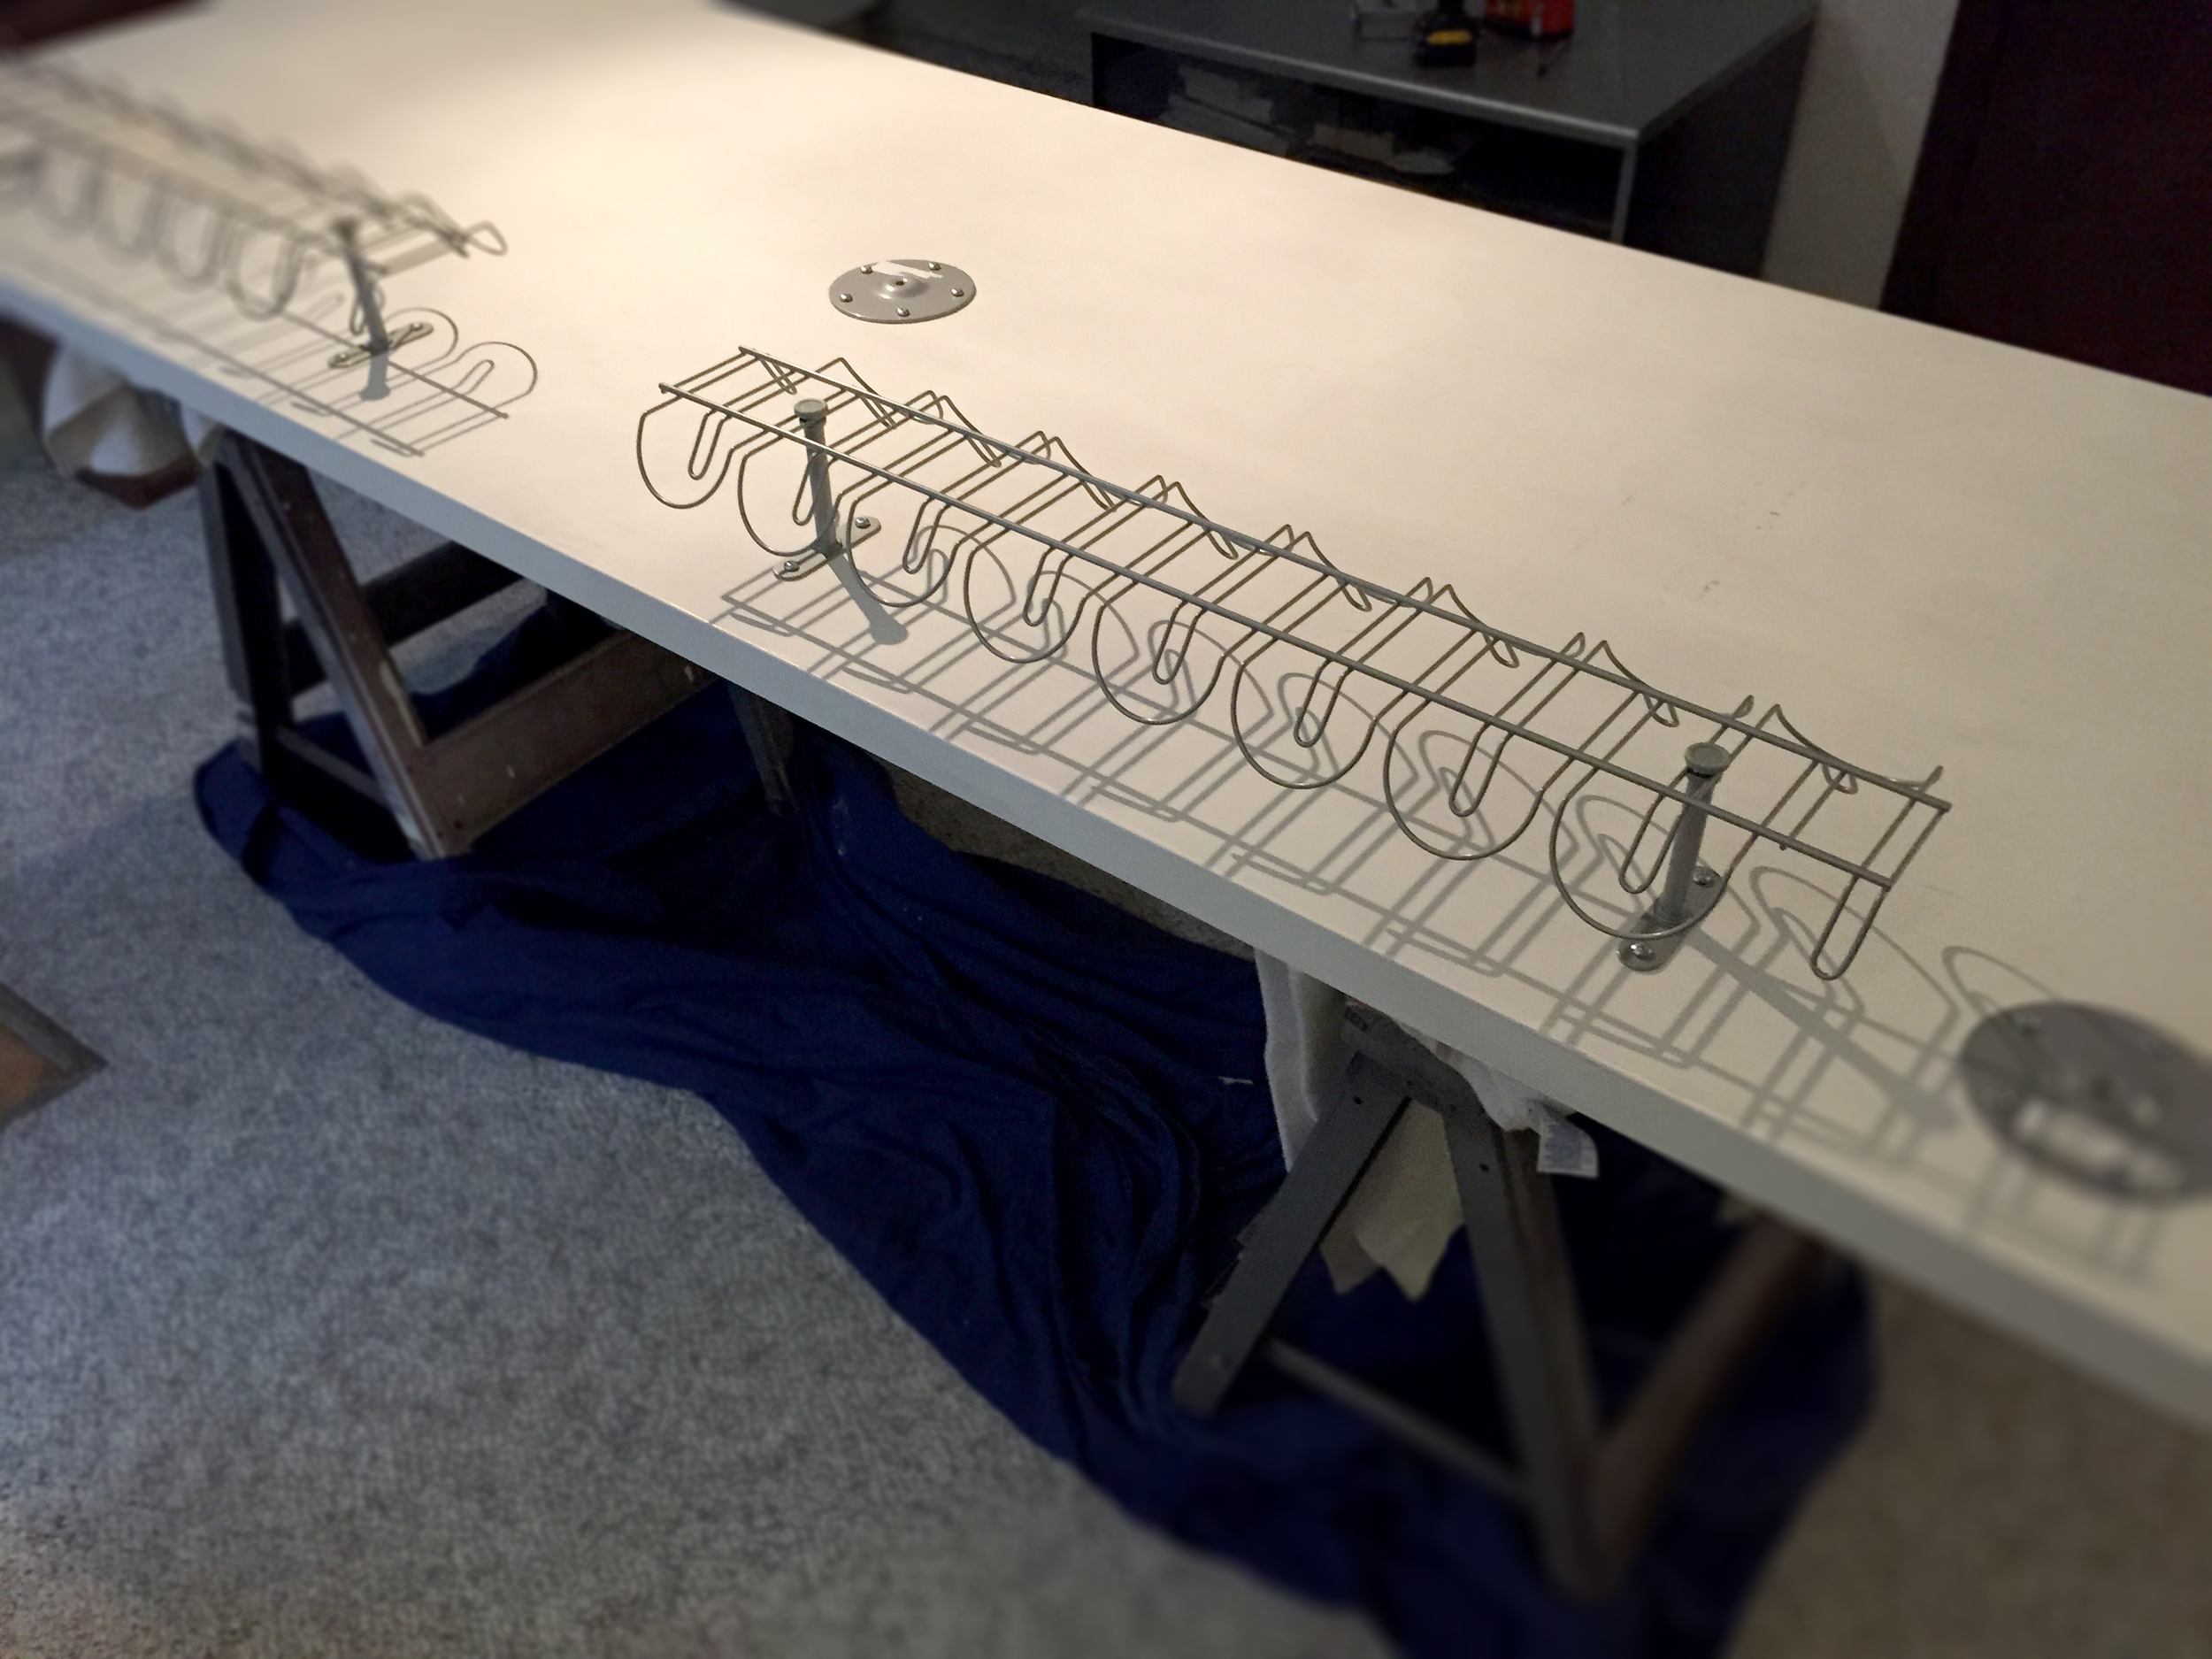 Adding the cable management baskets